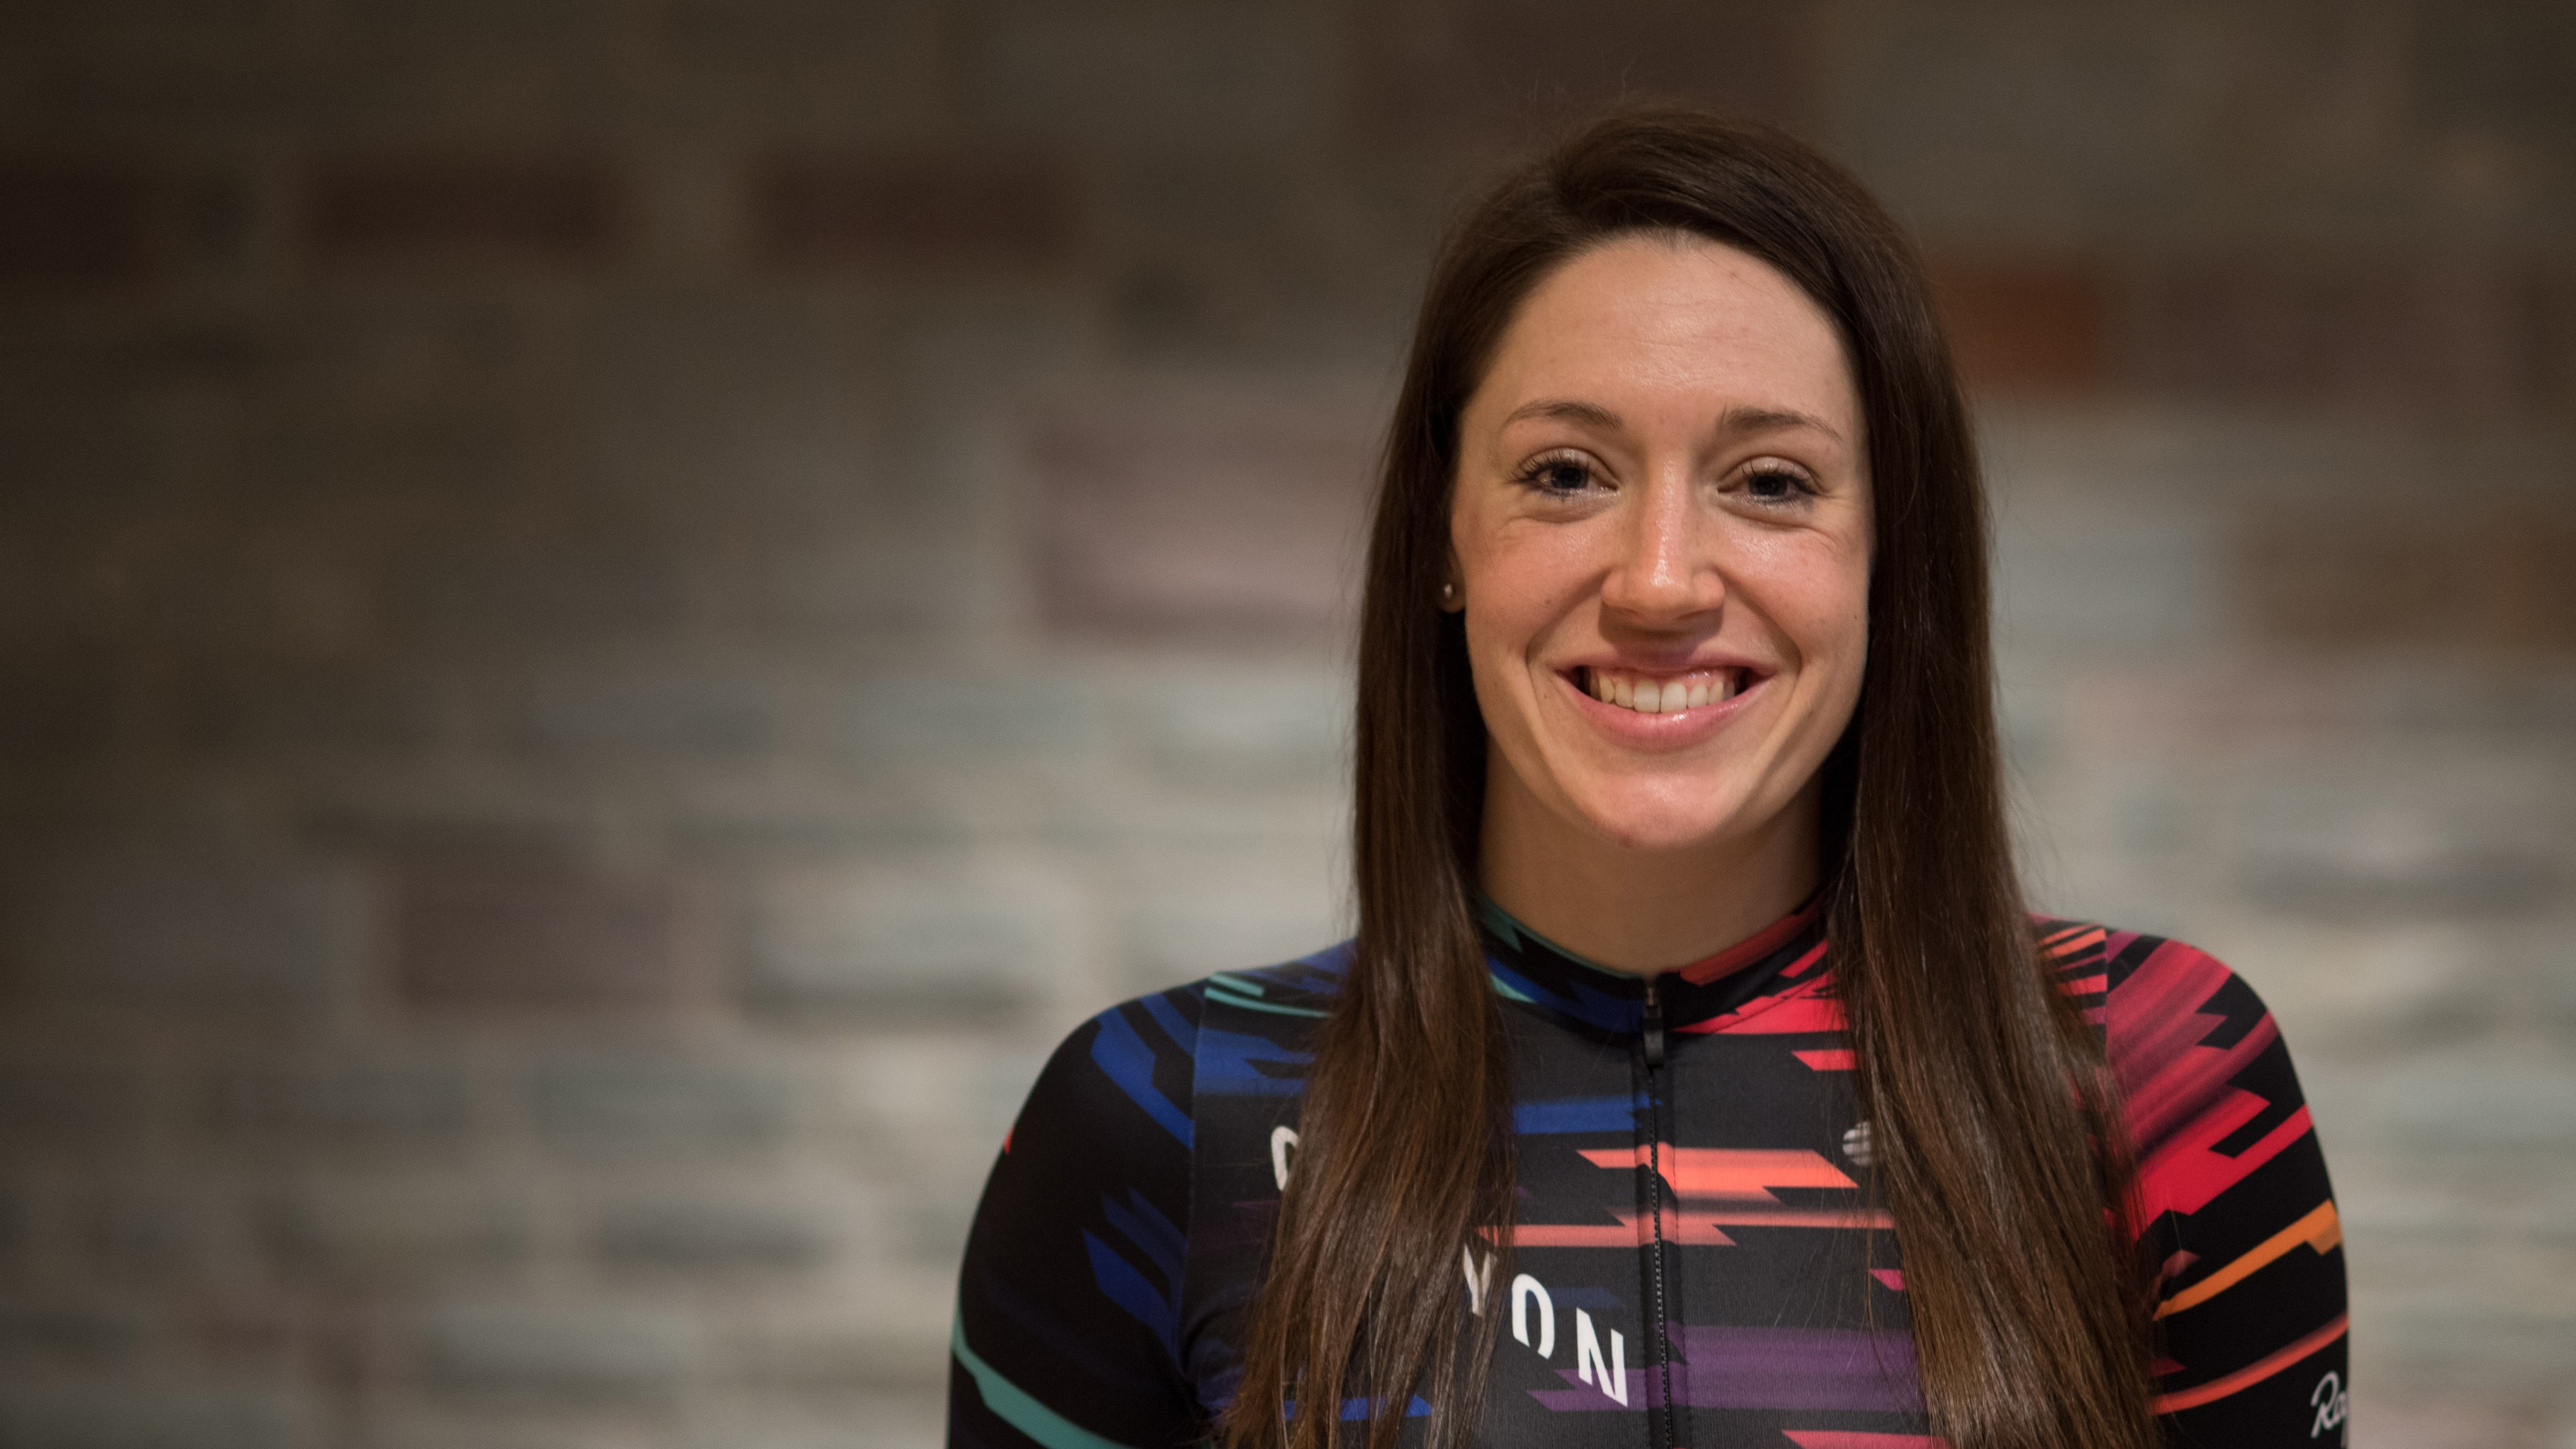 Erath, a qualified nurse, juggled training and competing in the Zwift Academy with her academic studies